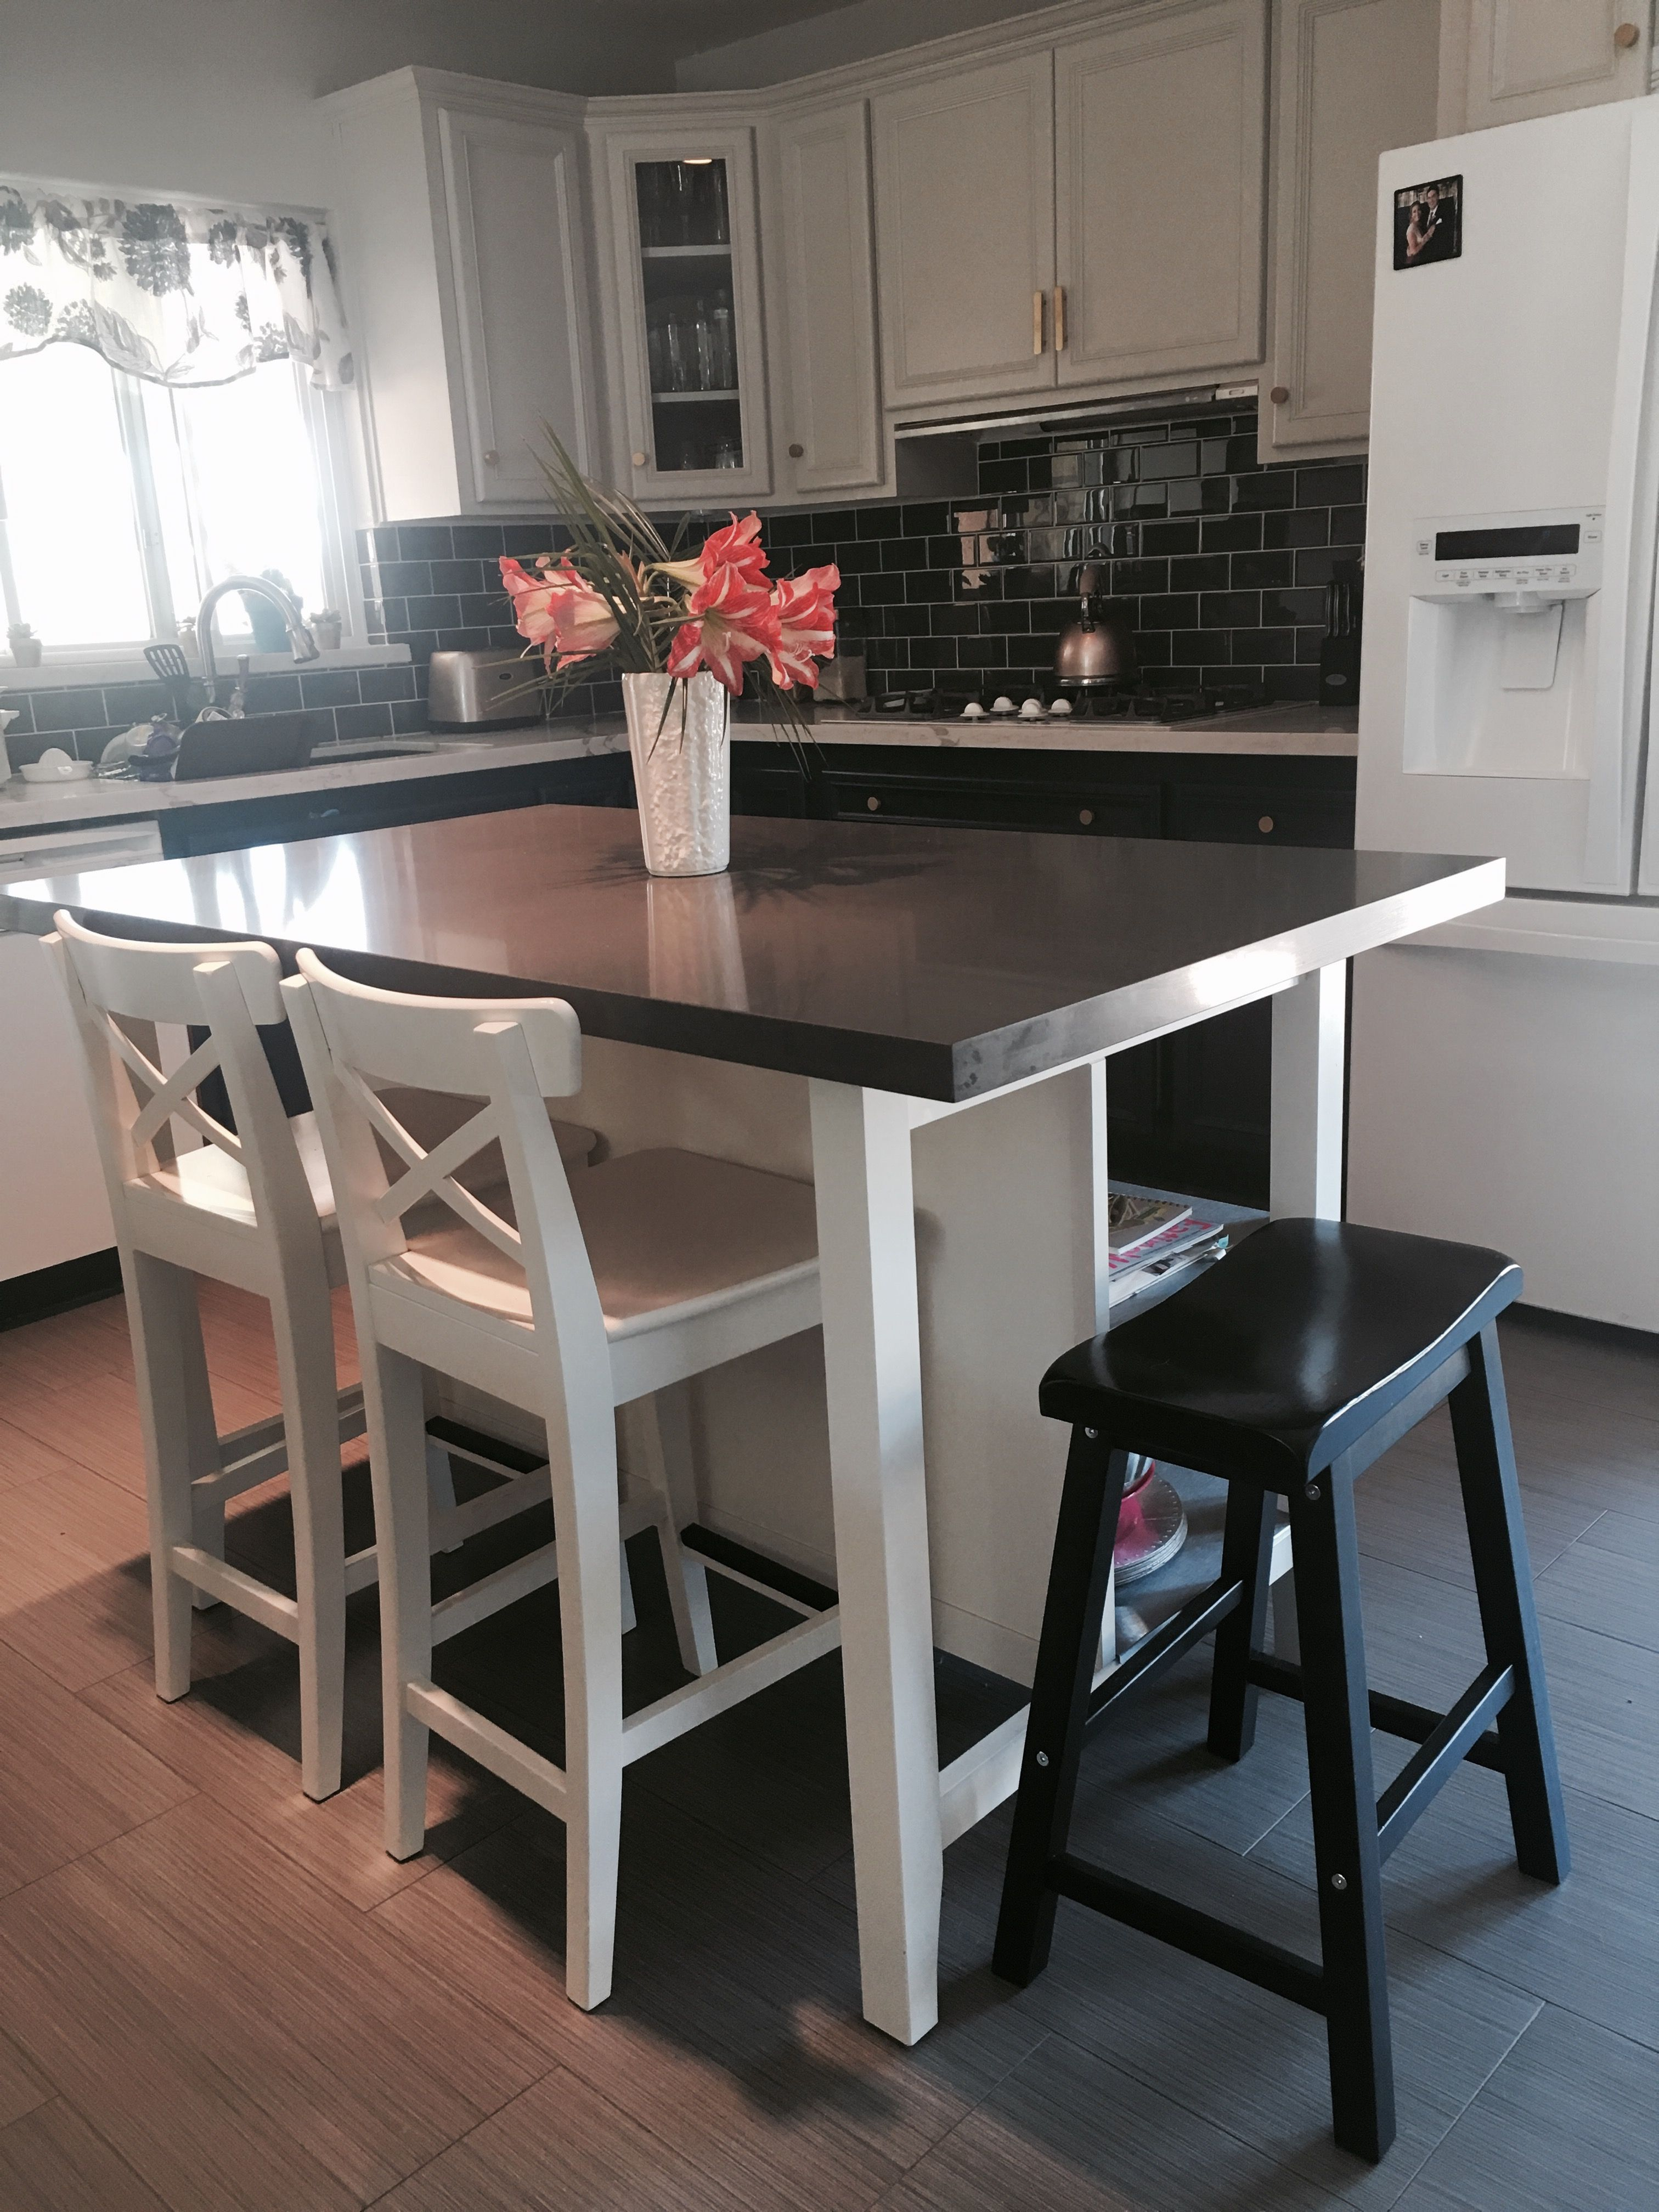 Ikea Stenstorp Kitchen Island Hack Here Is Another View Of Our